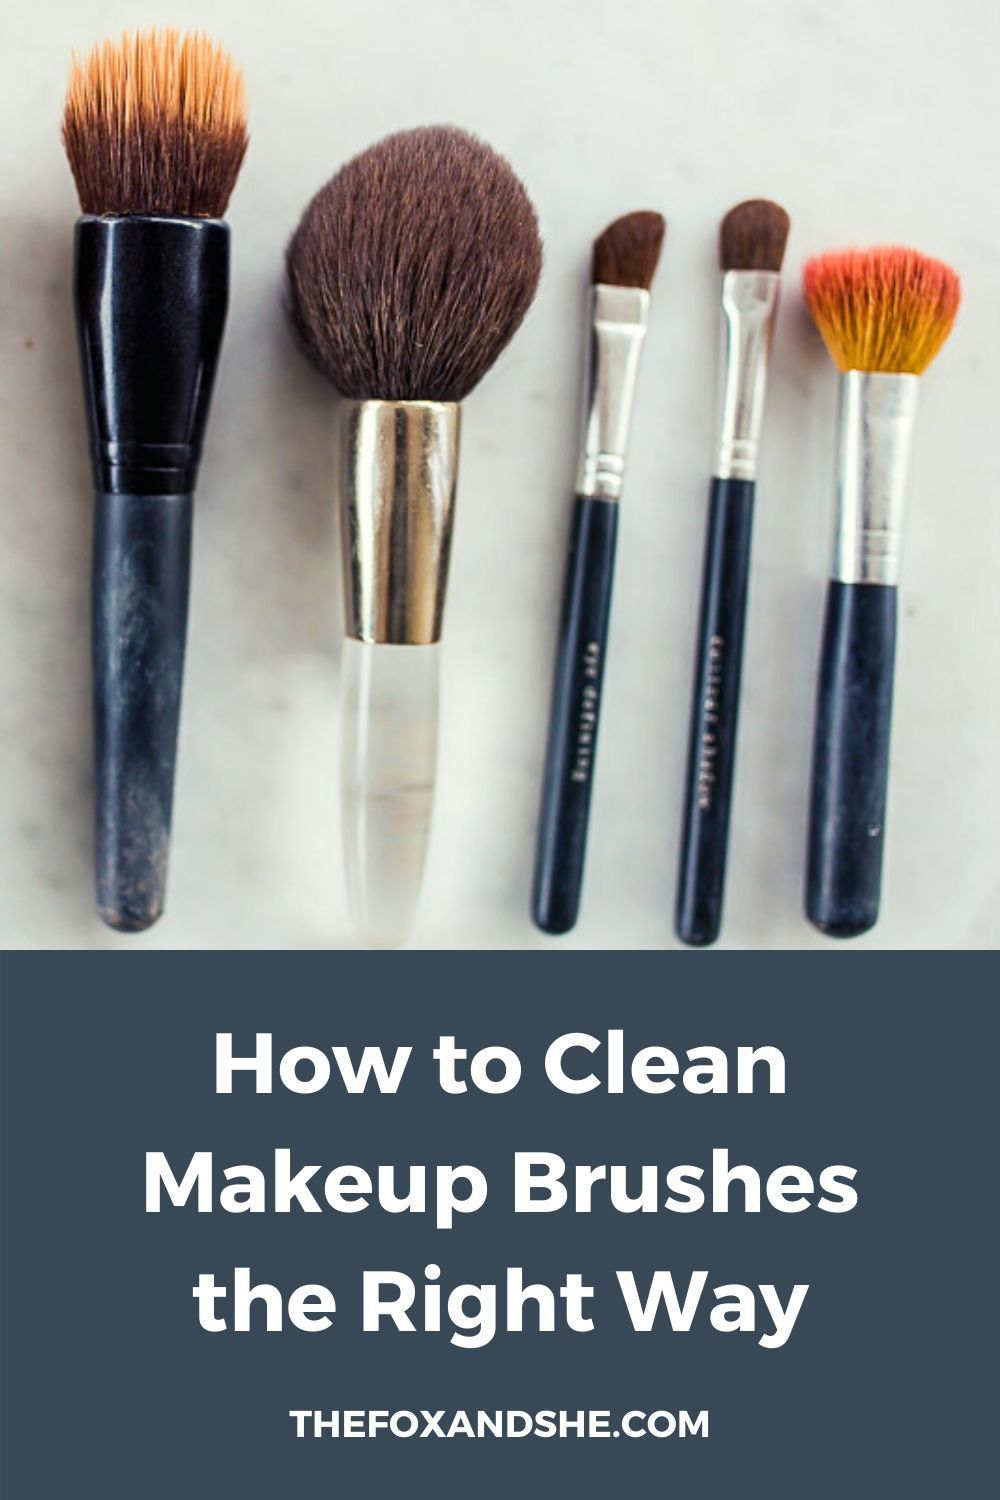 How to Clean Makeup Brushes | The Fox